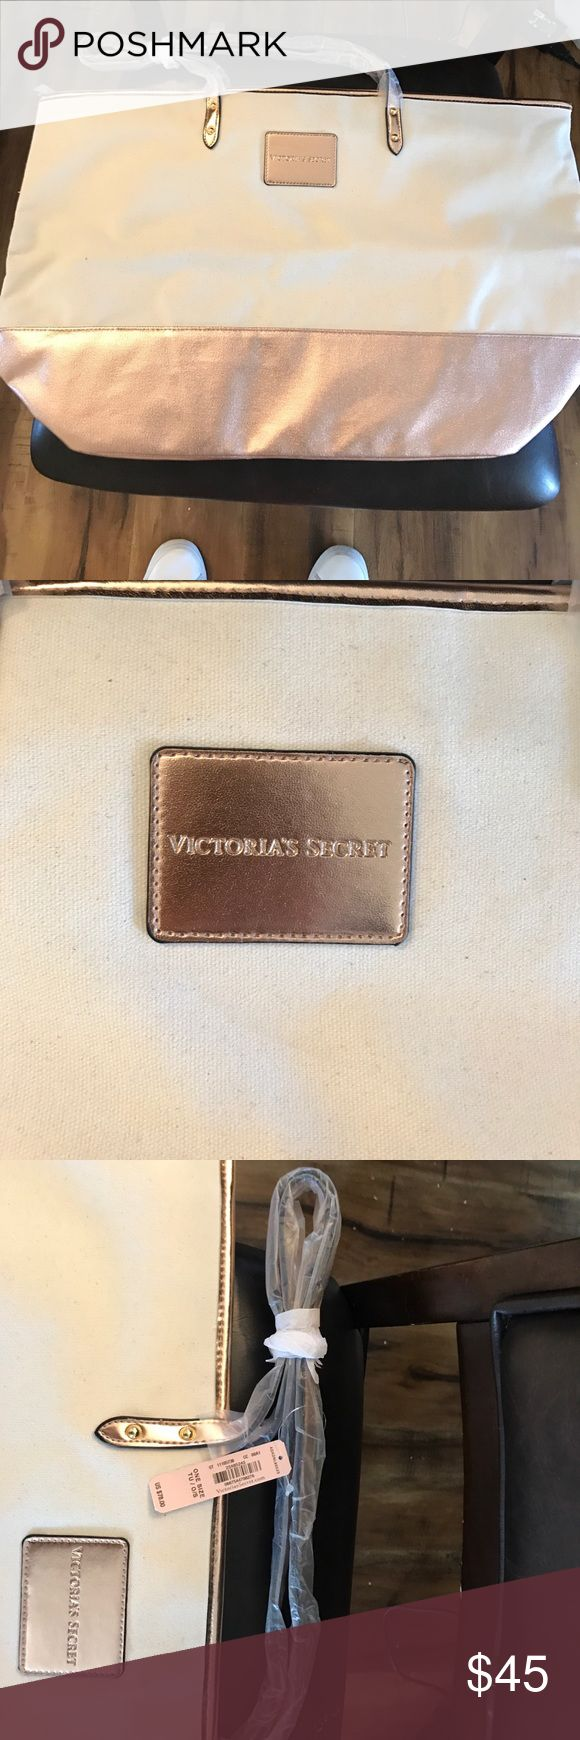 Victoria's Secret Tote Rose gold and off white Vickies Tote bag with size pink close and baby pink interior! Victoria's Secret Bags Totes